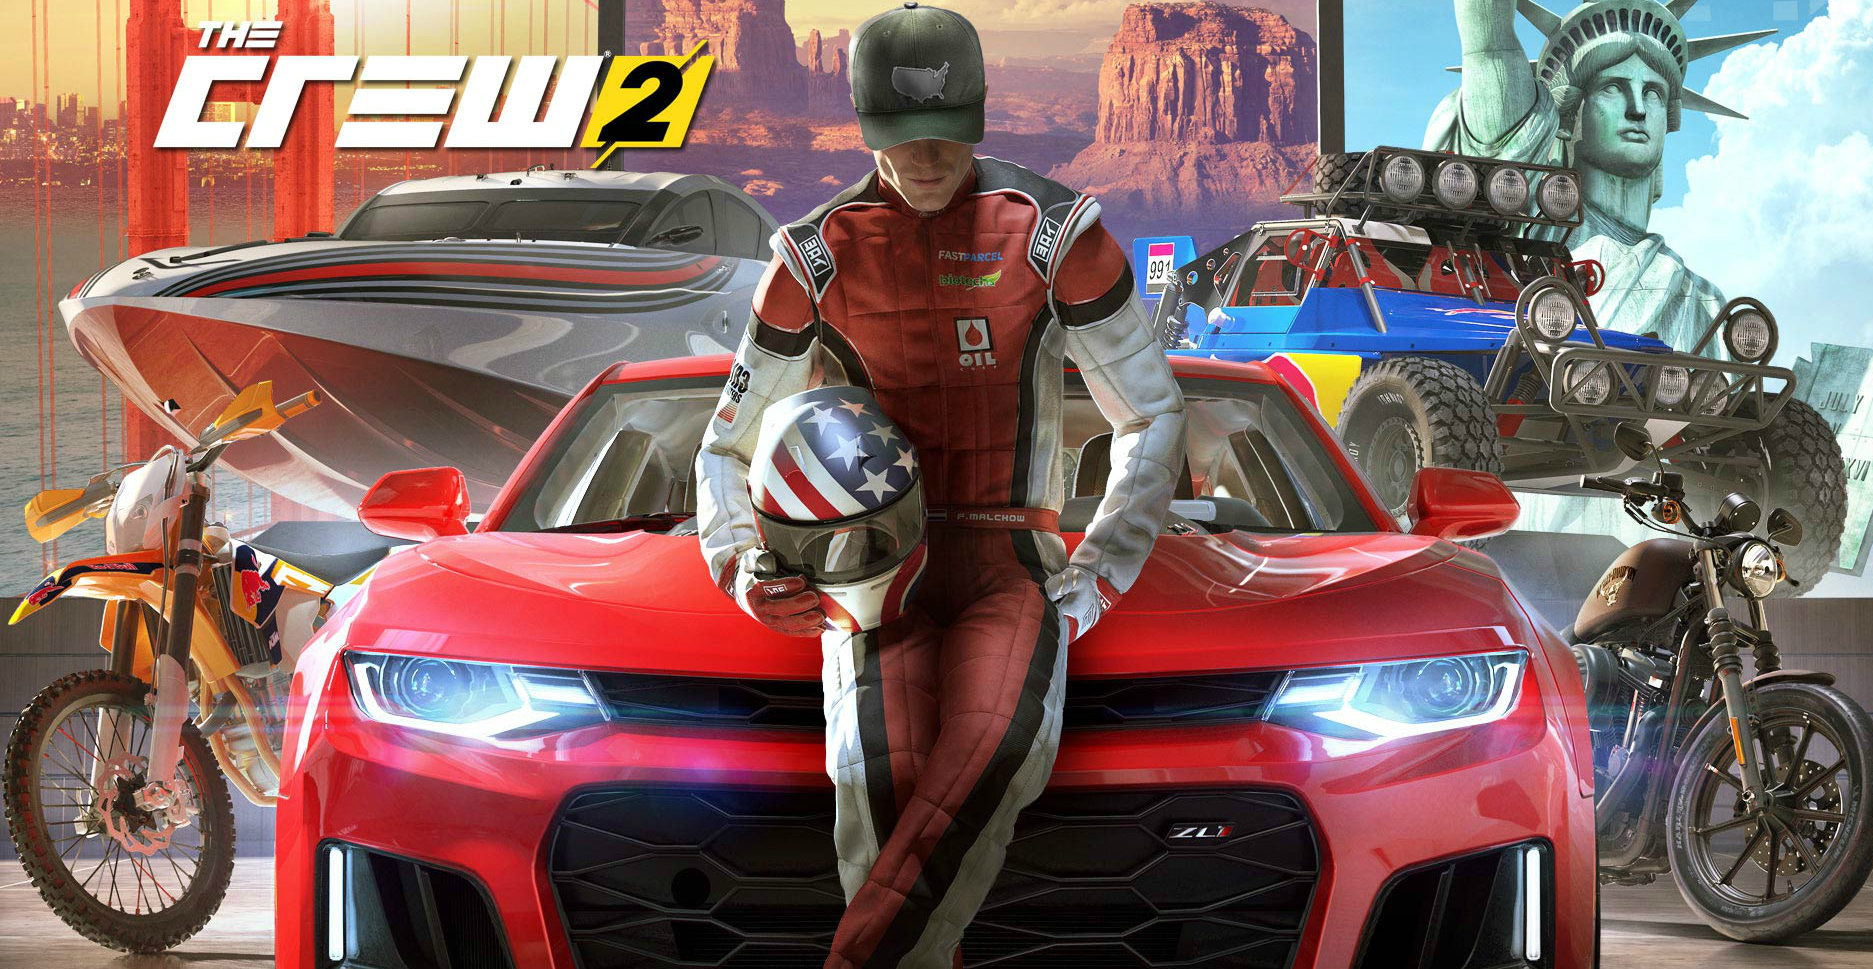 GeForce Game Ready Driver 398 36 Available Now, Optimized for The Crew 2